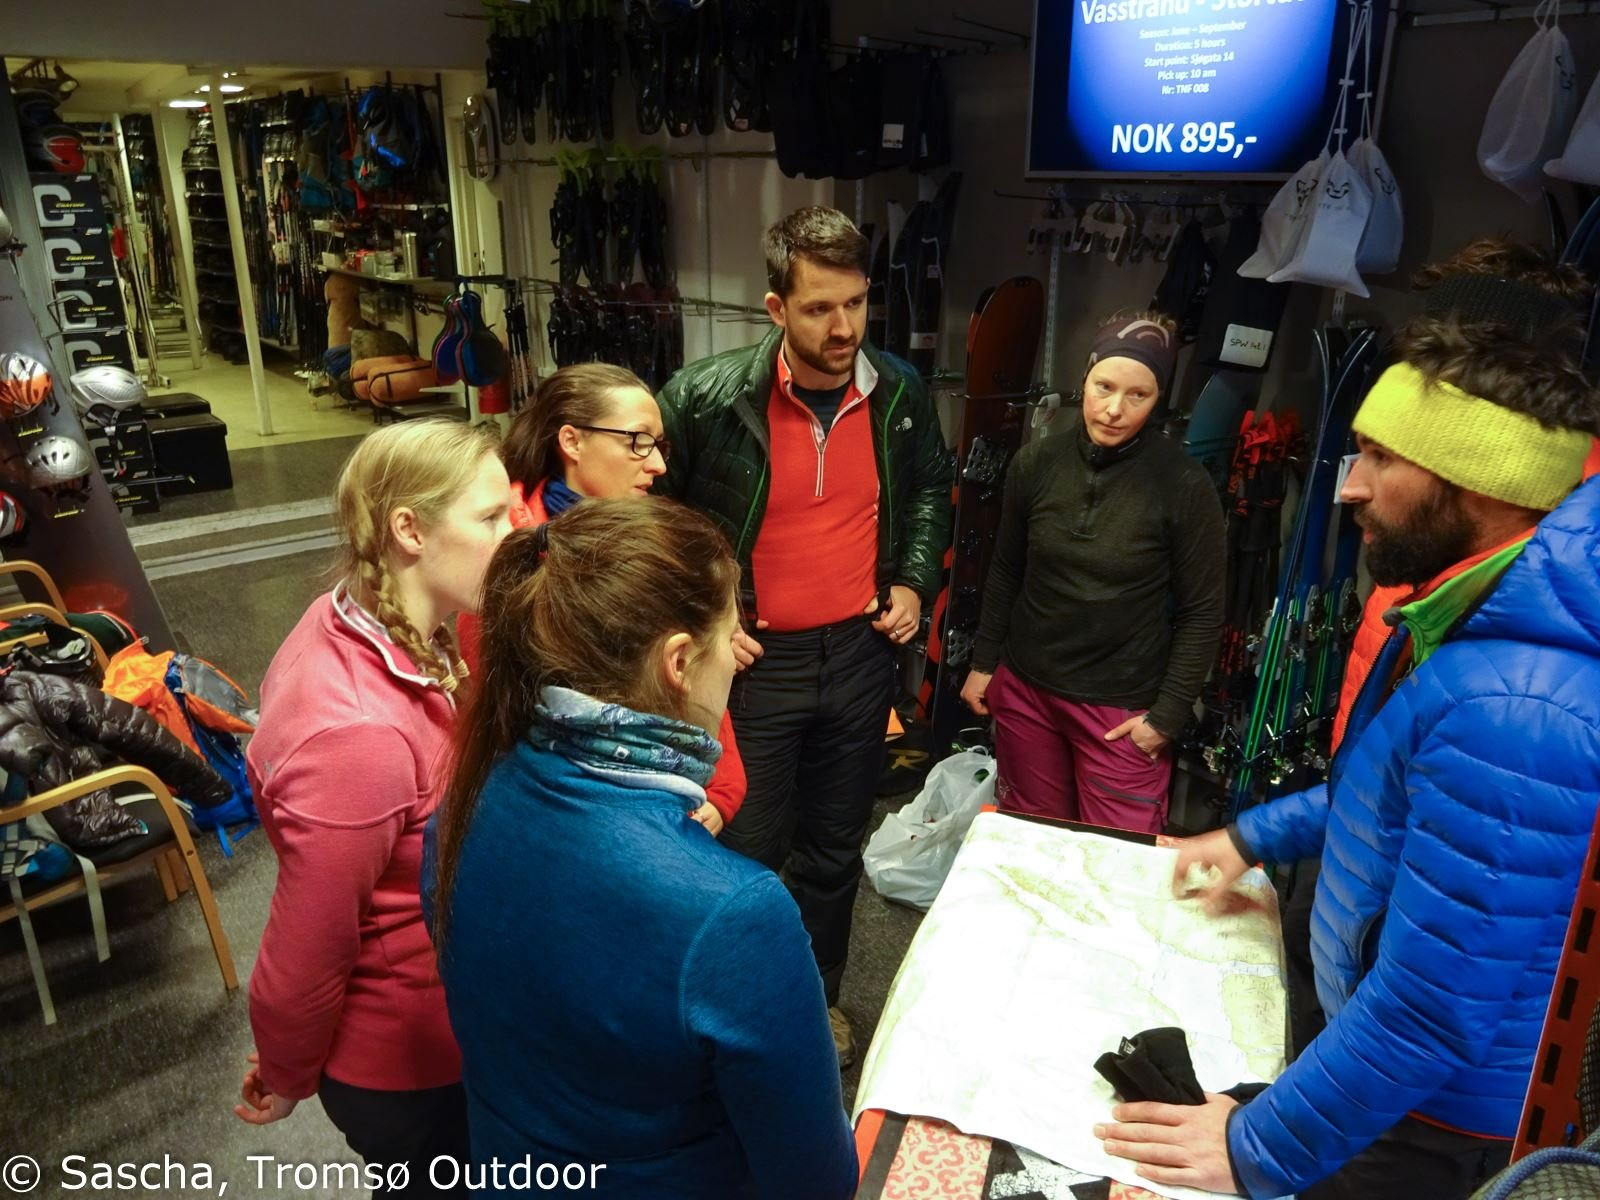 006. Introduction to ski touring – guided trip for alpine skiers